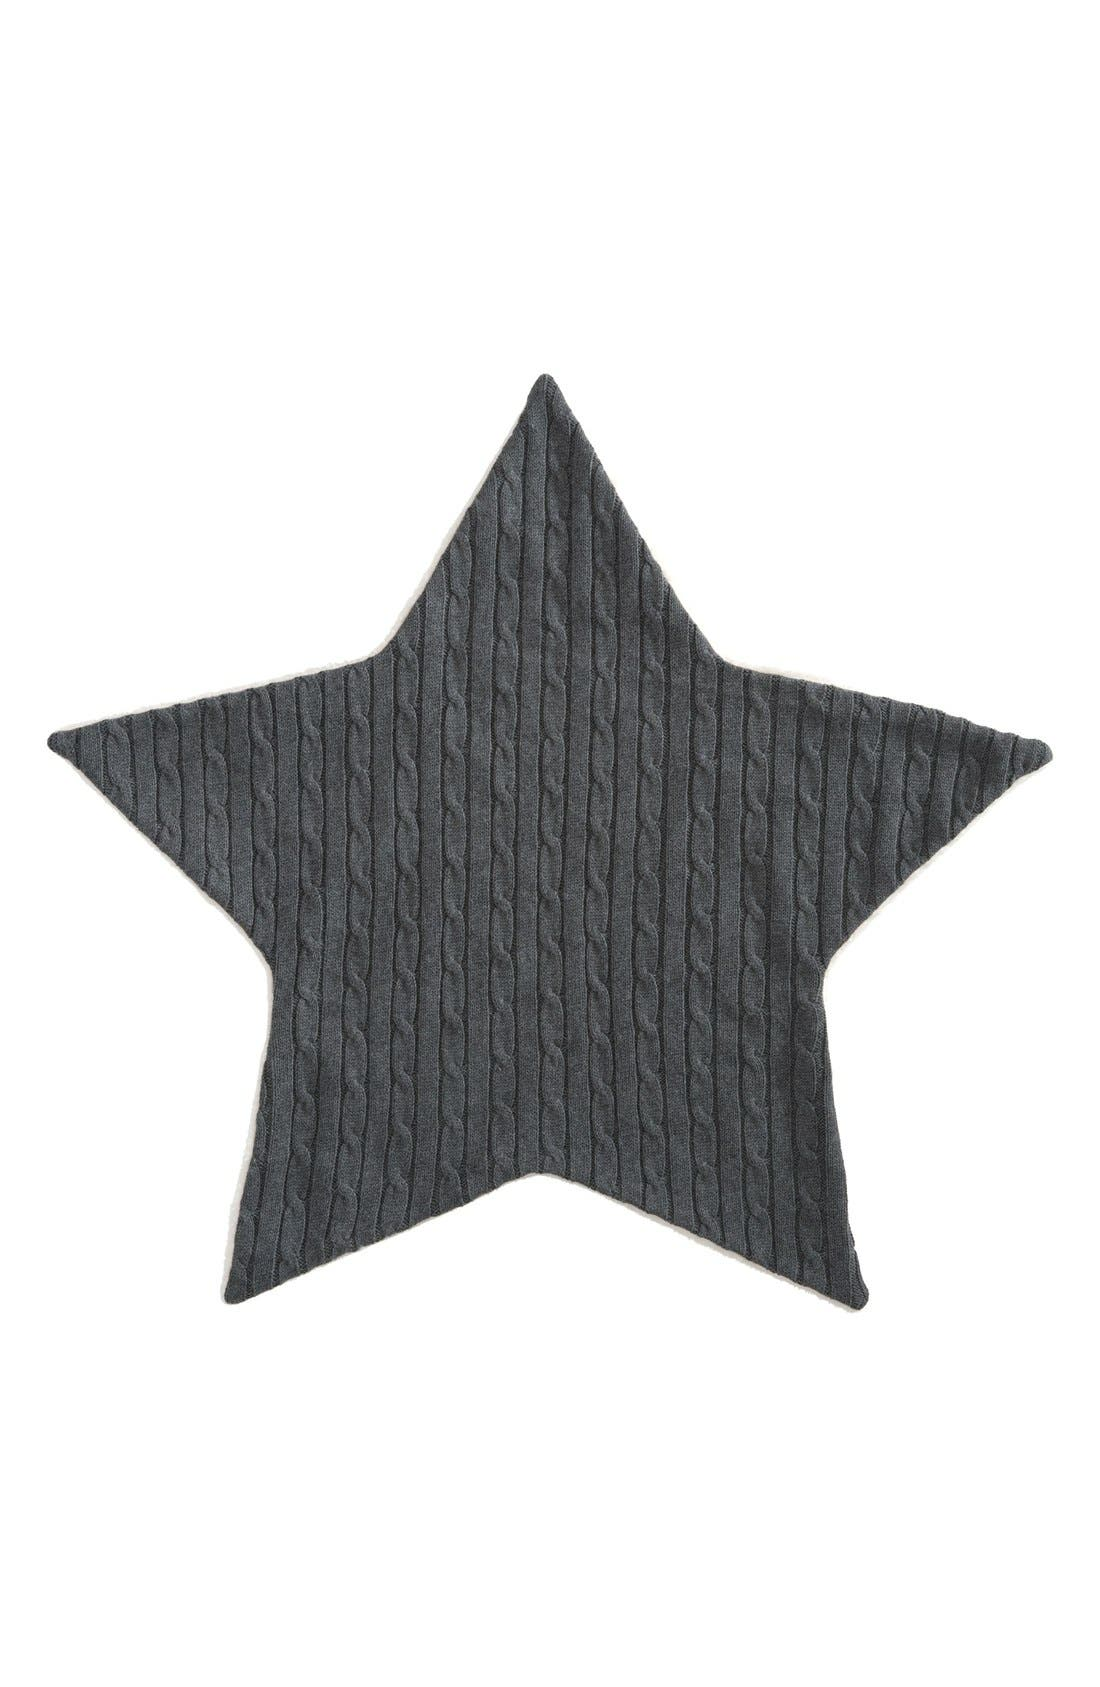 Cable Knit Star Blanket,                         Main,                         color,